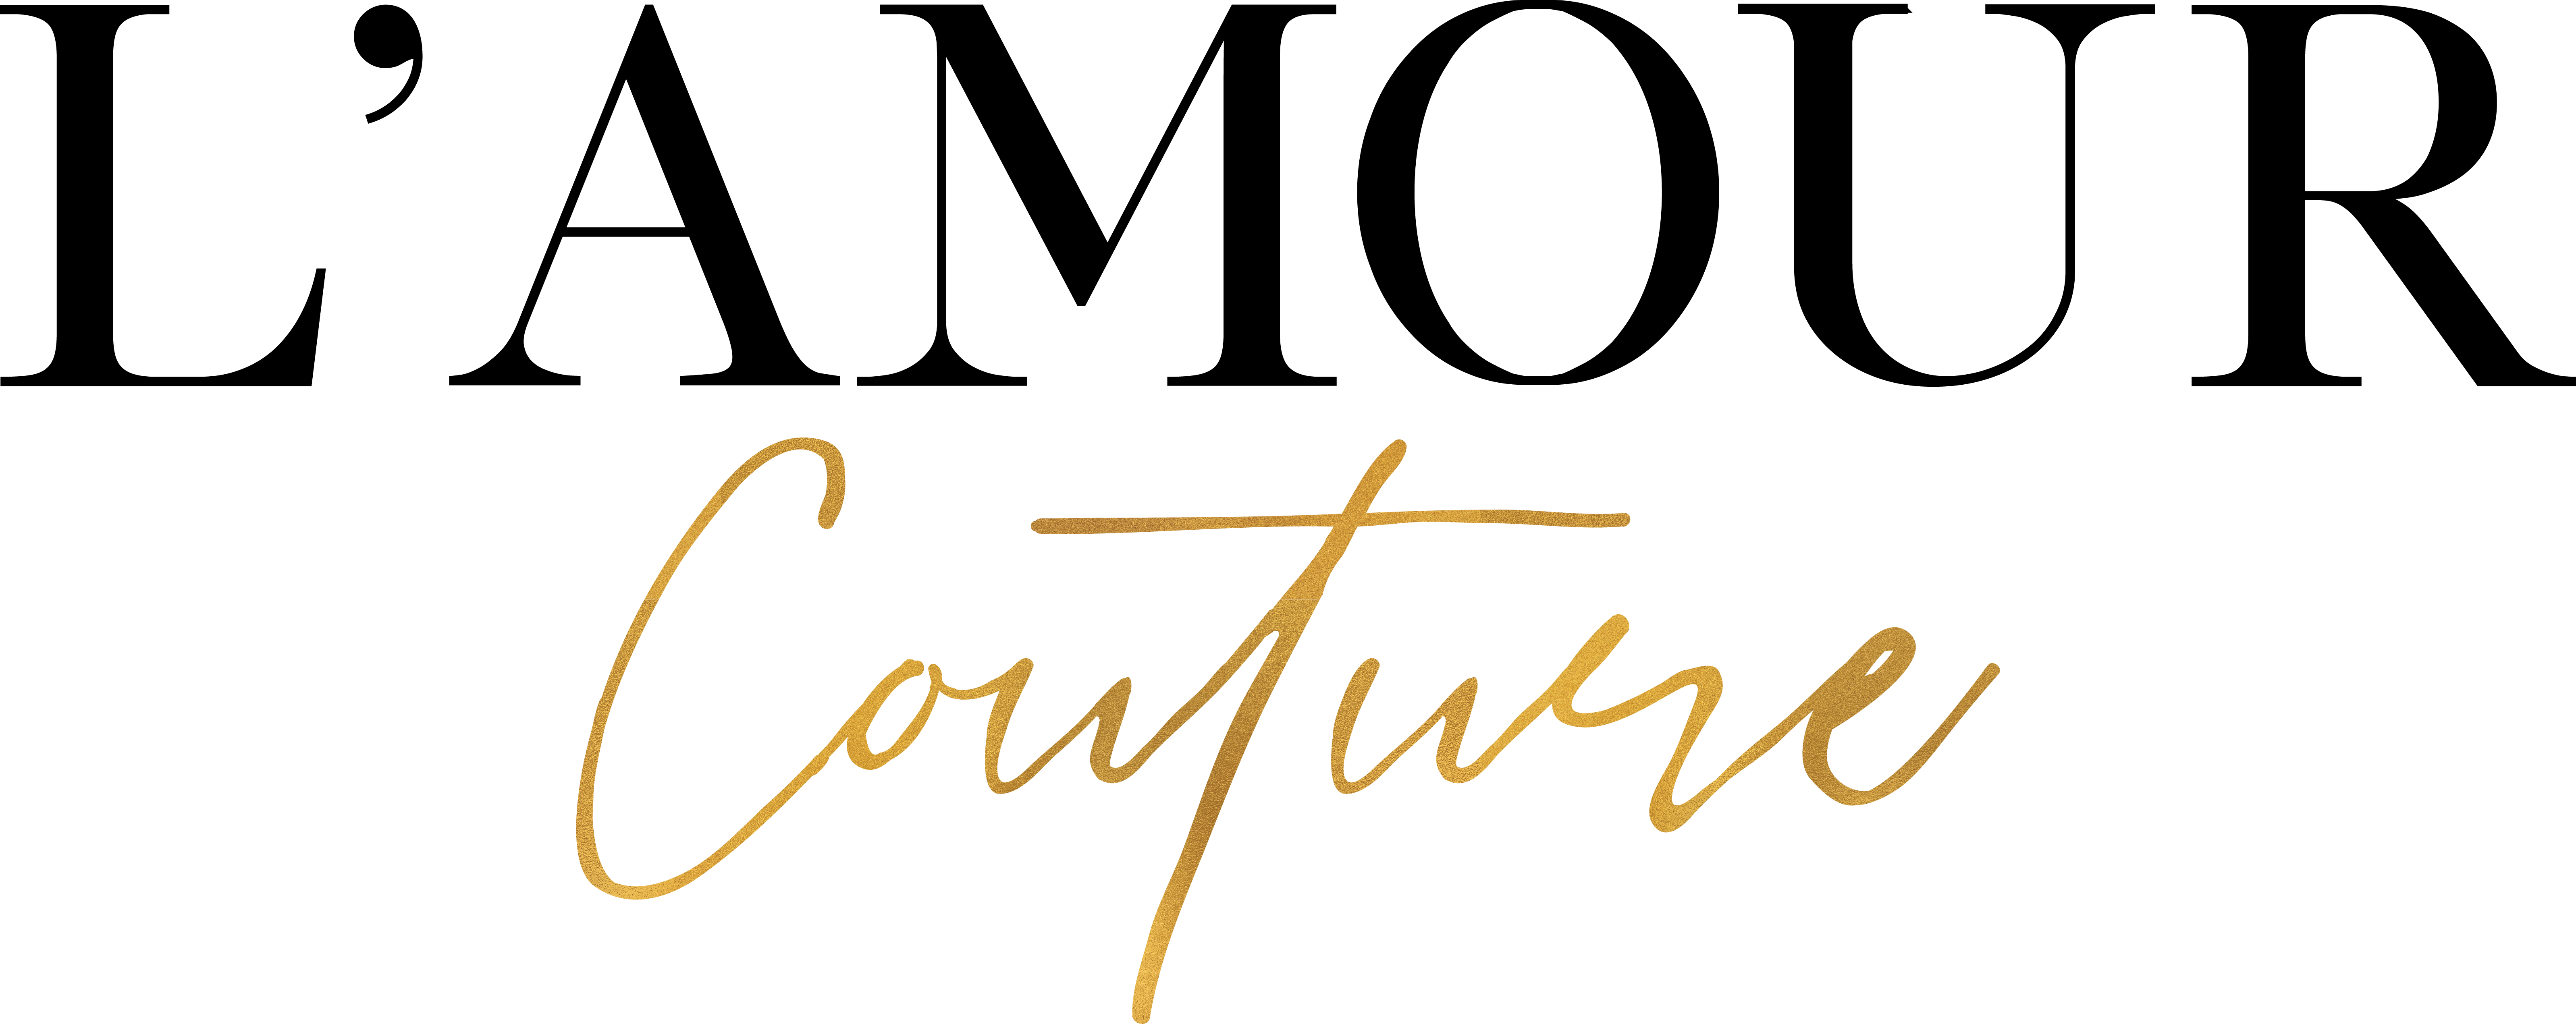 Shop Lamour Couture